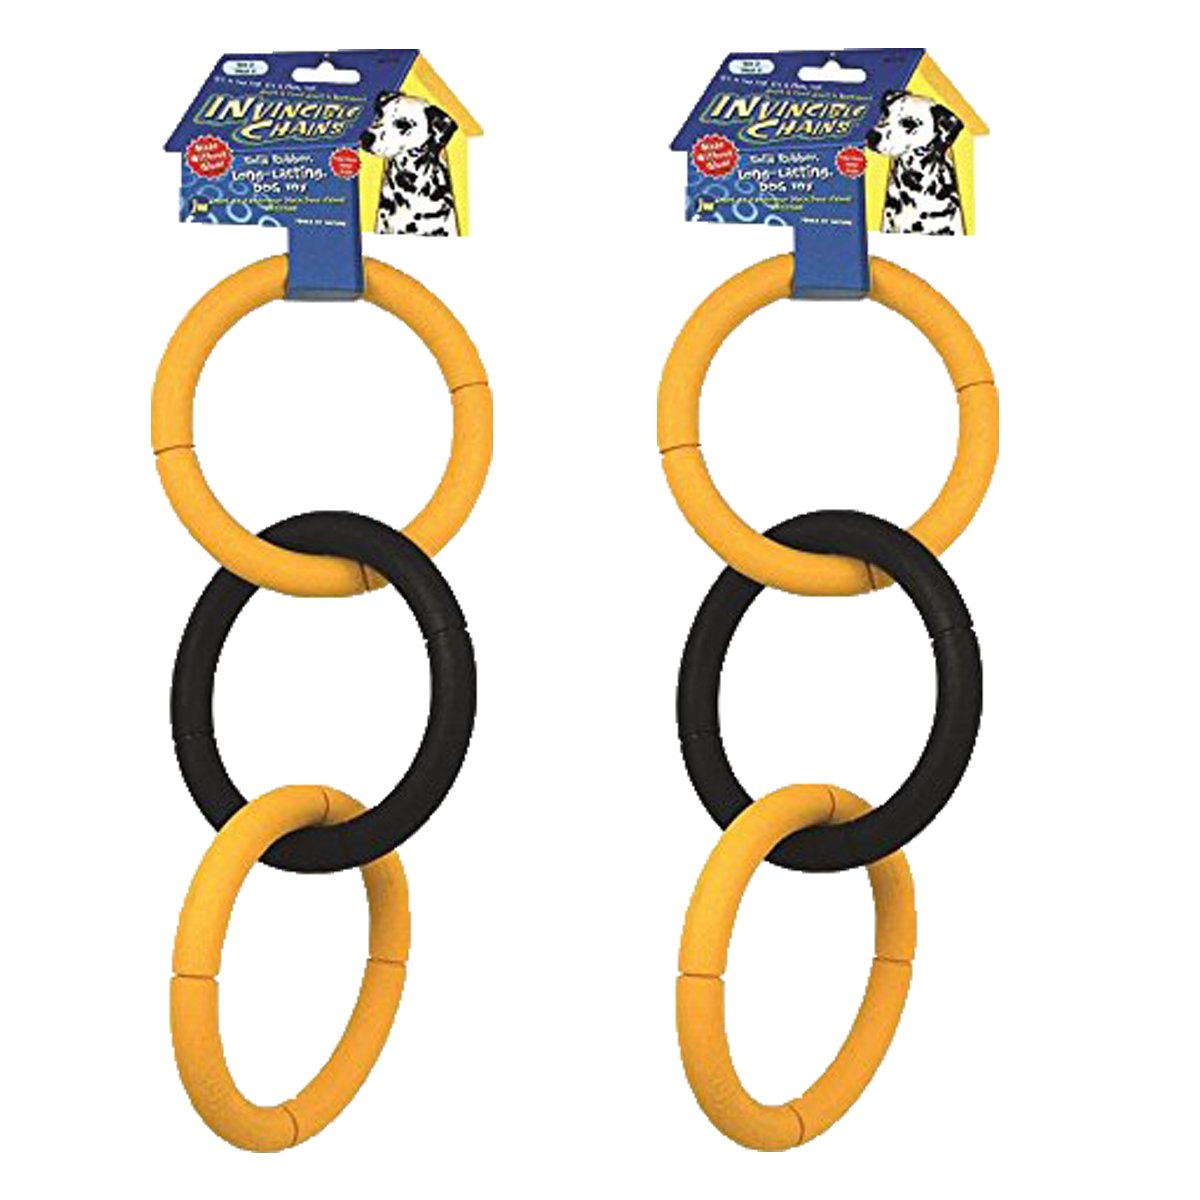 JW Pet Invincible Chains Rubber Dog Toy, Large, 2 Pack